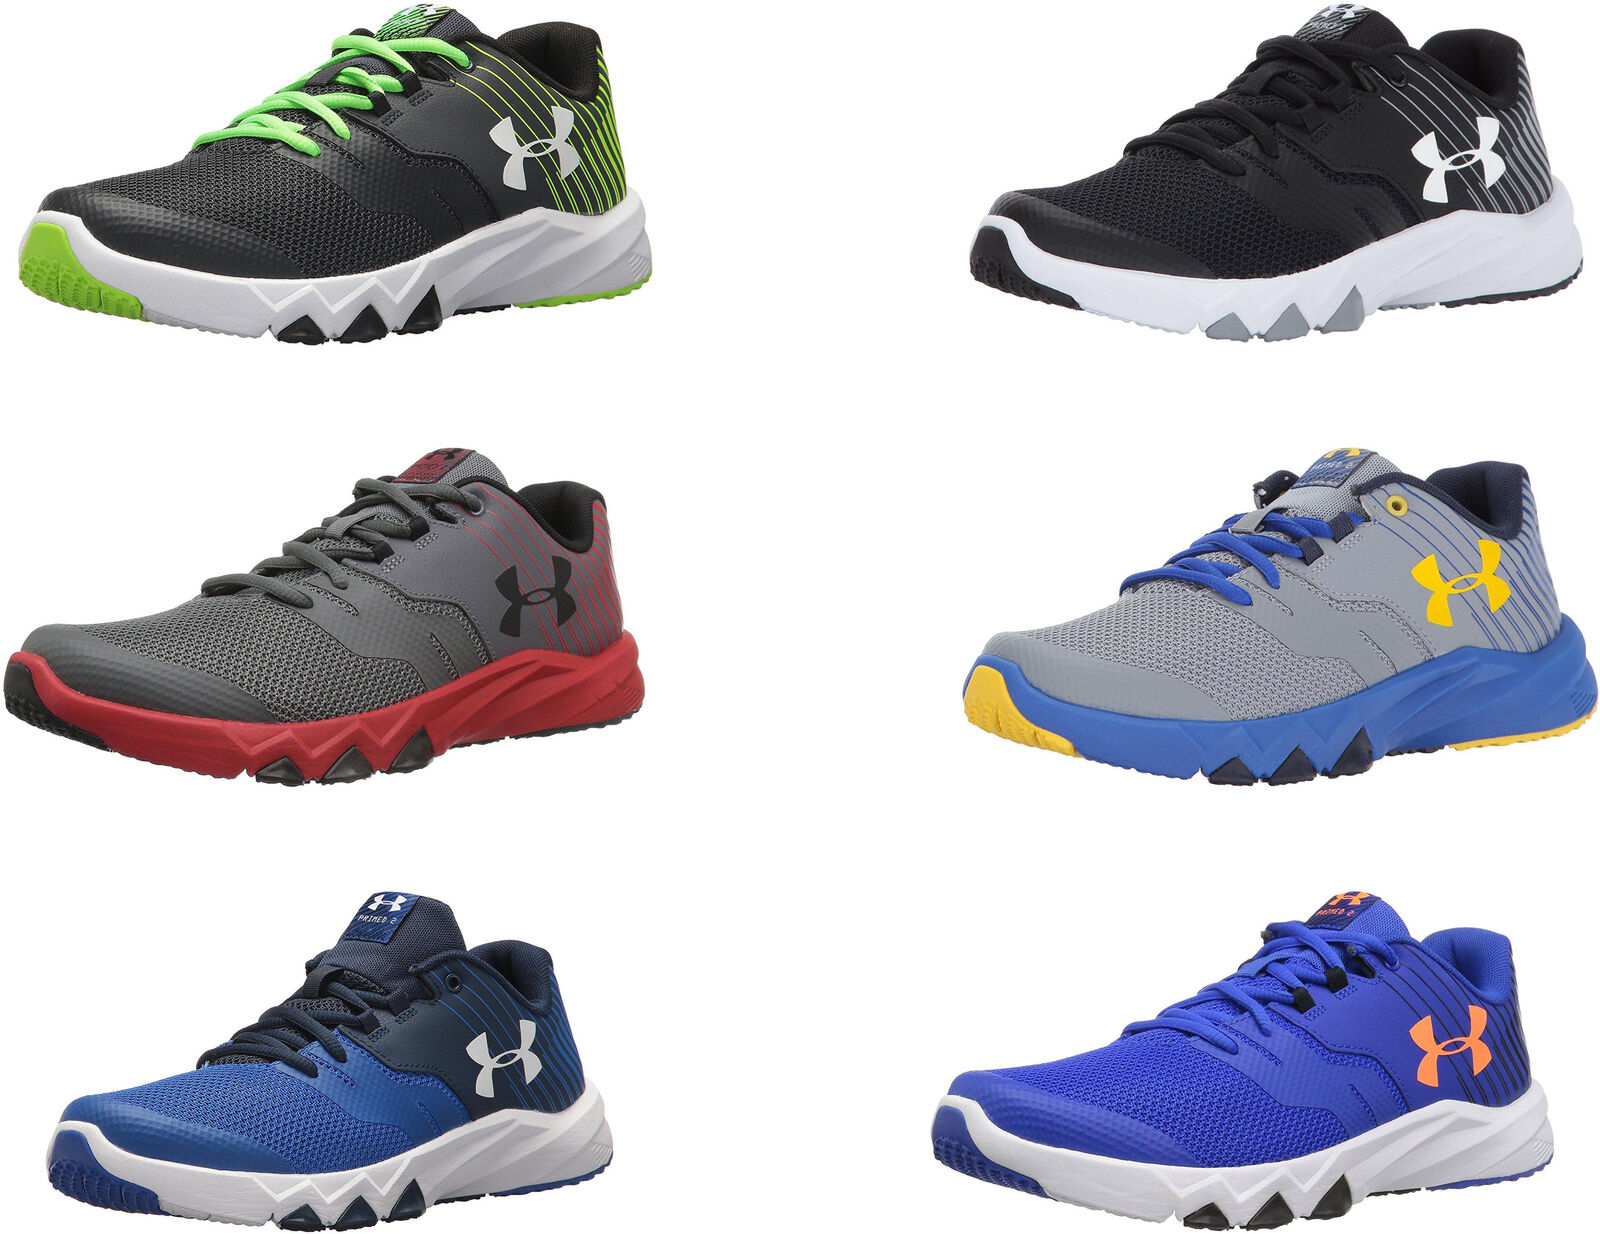 9c5a0f3bbc9 Details about Under Armour Boy s Primed 2 Running Shoes